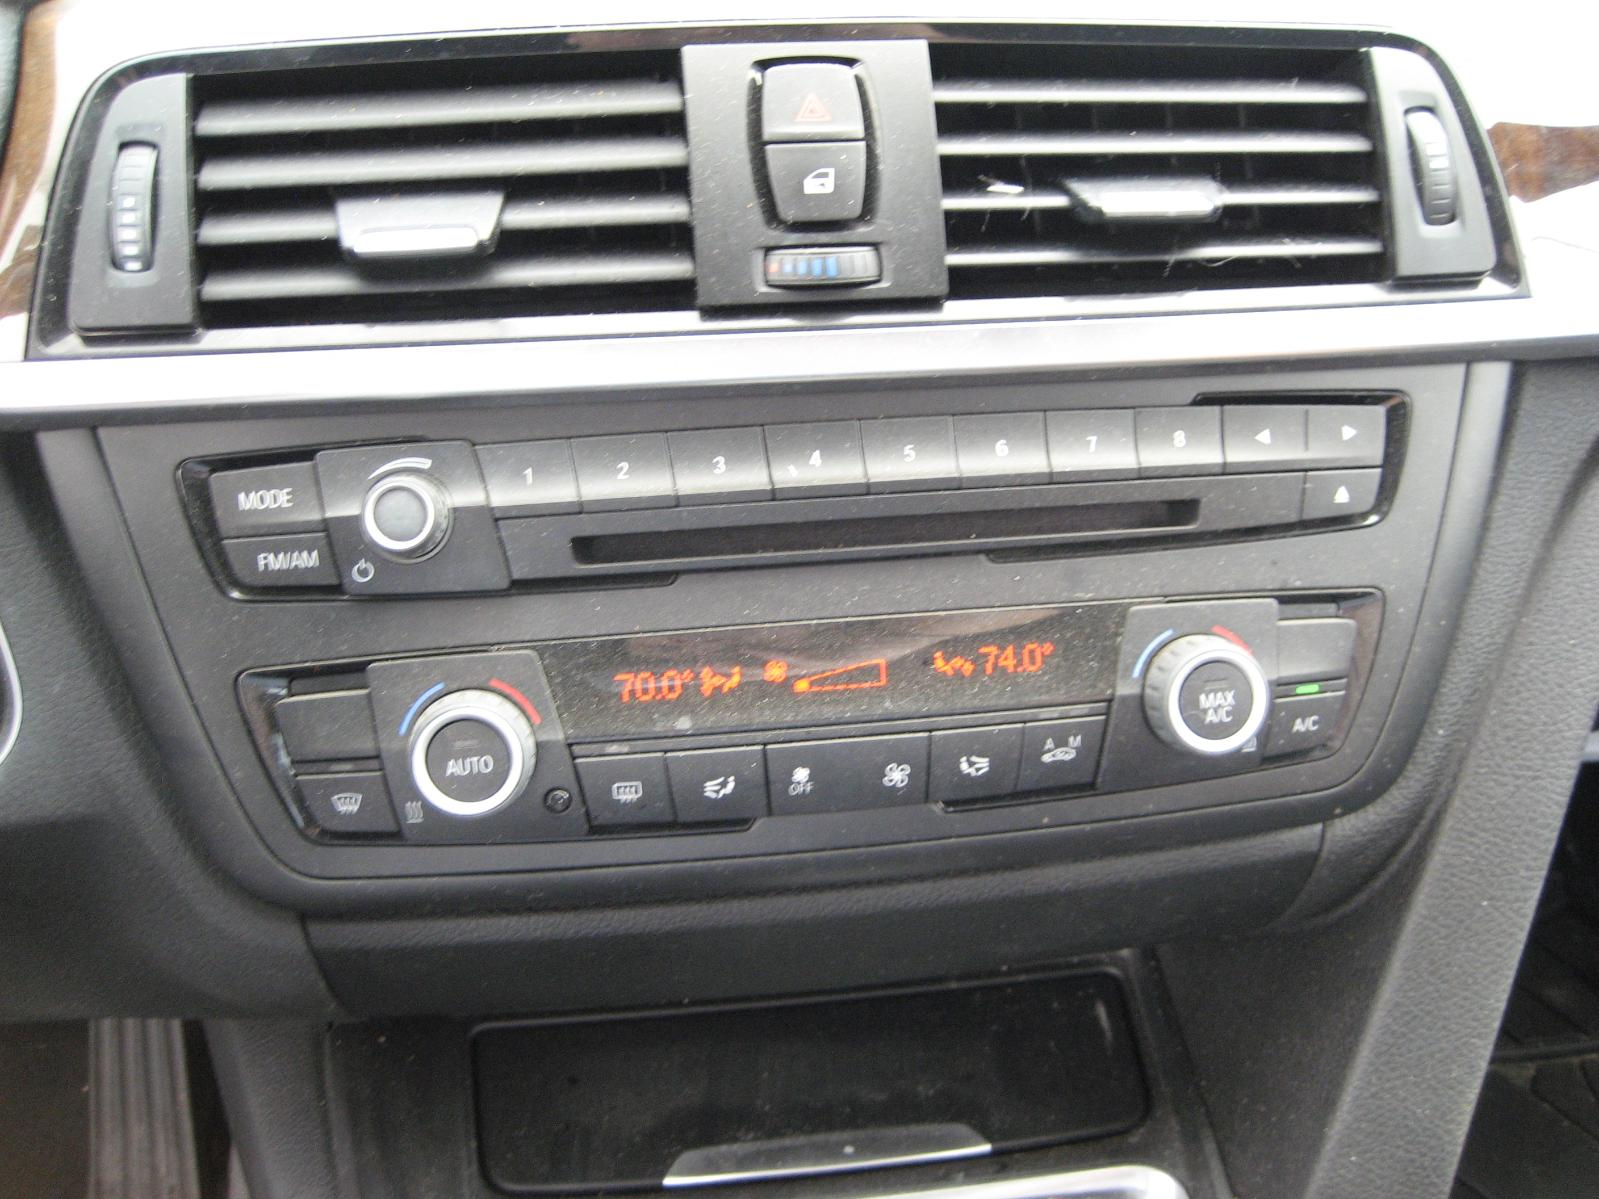 used audio visual system radio for sale for a 2015 bmw. Black Bedroom Furniture Sets. Home Design Ideas